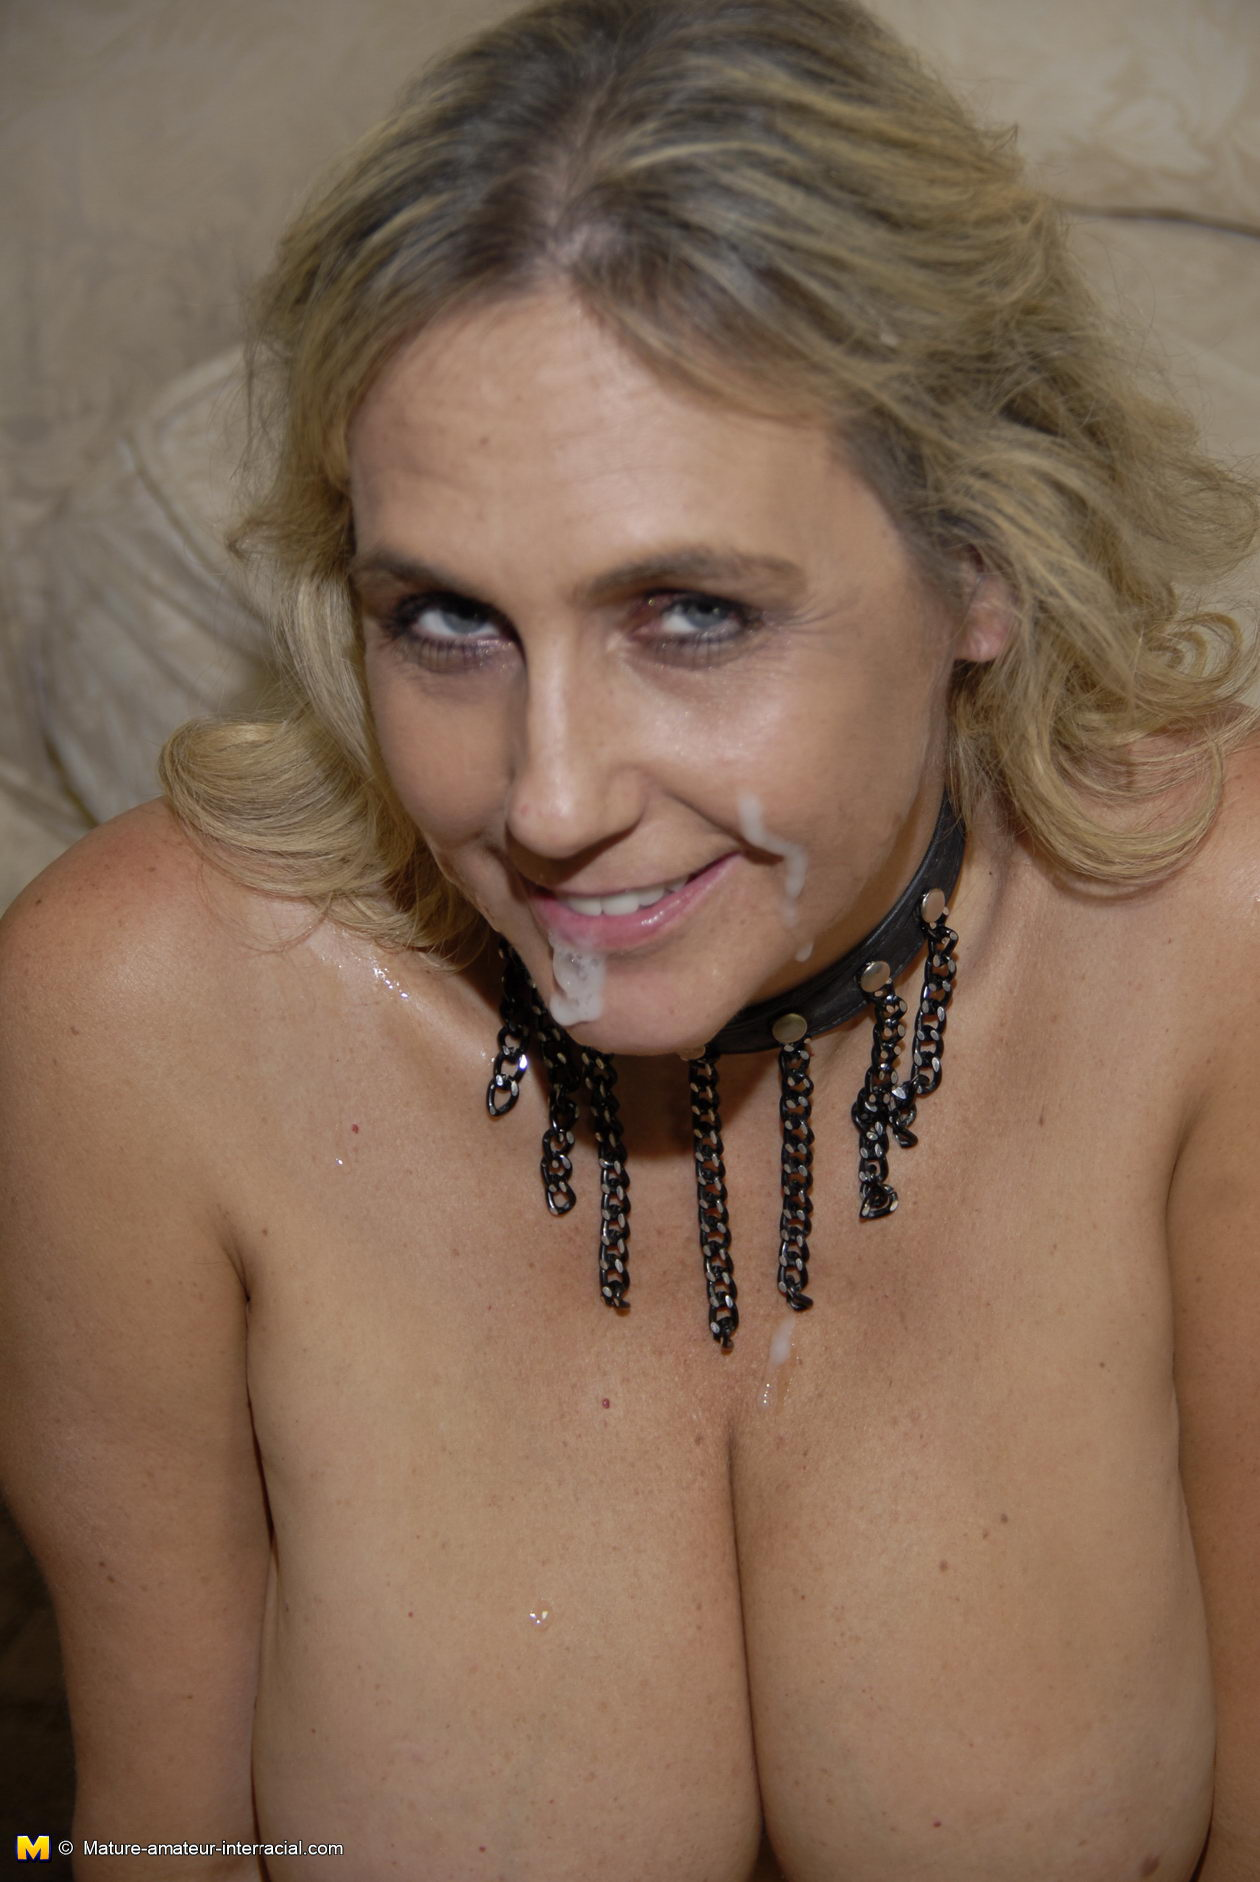 Brilliant idea mature blonde loves black cock question Likely